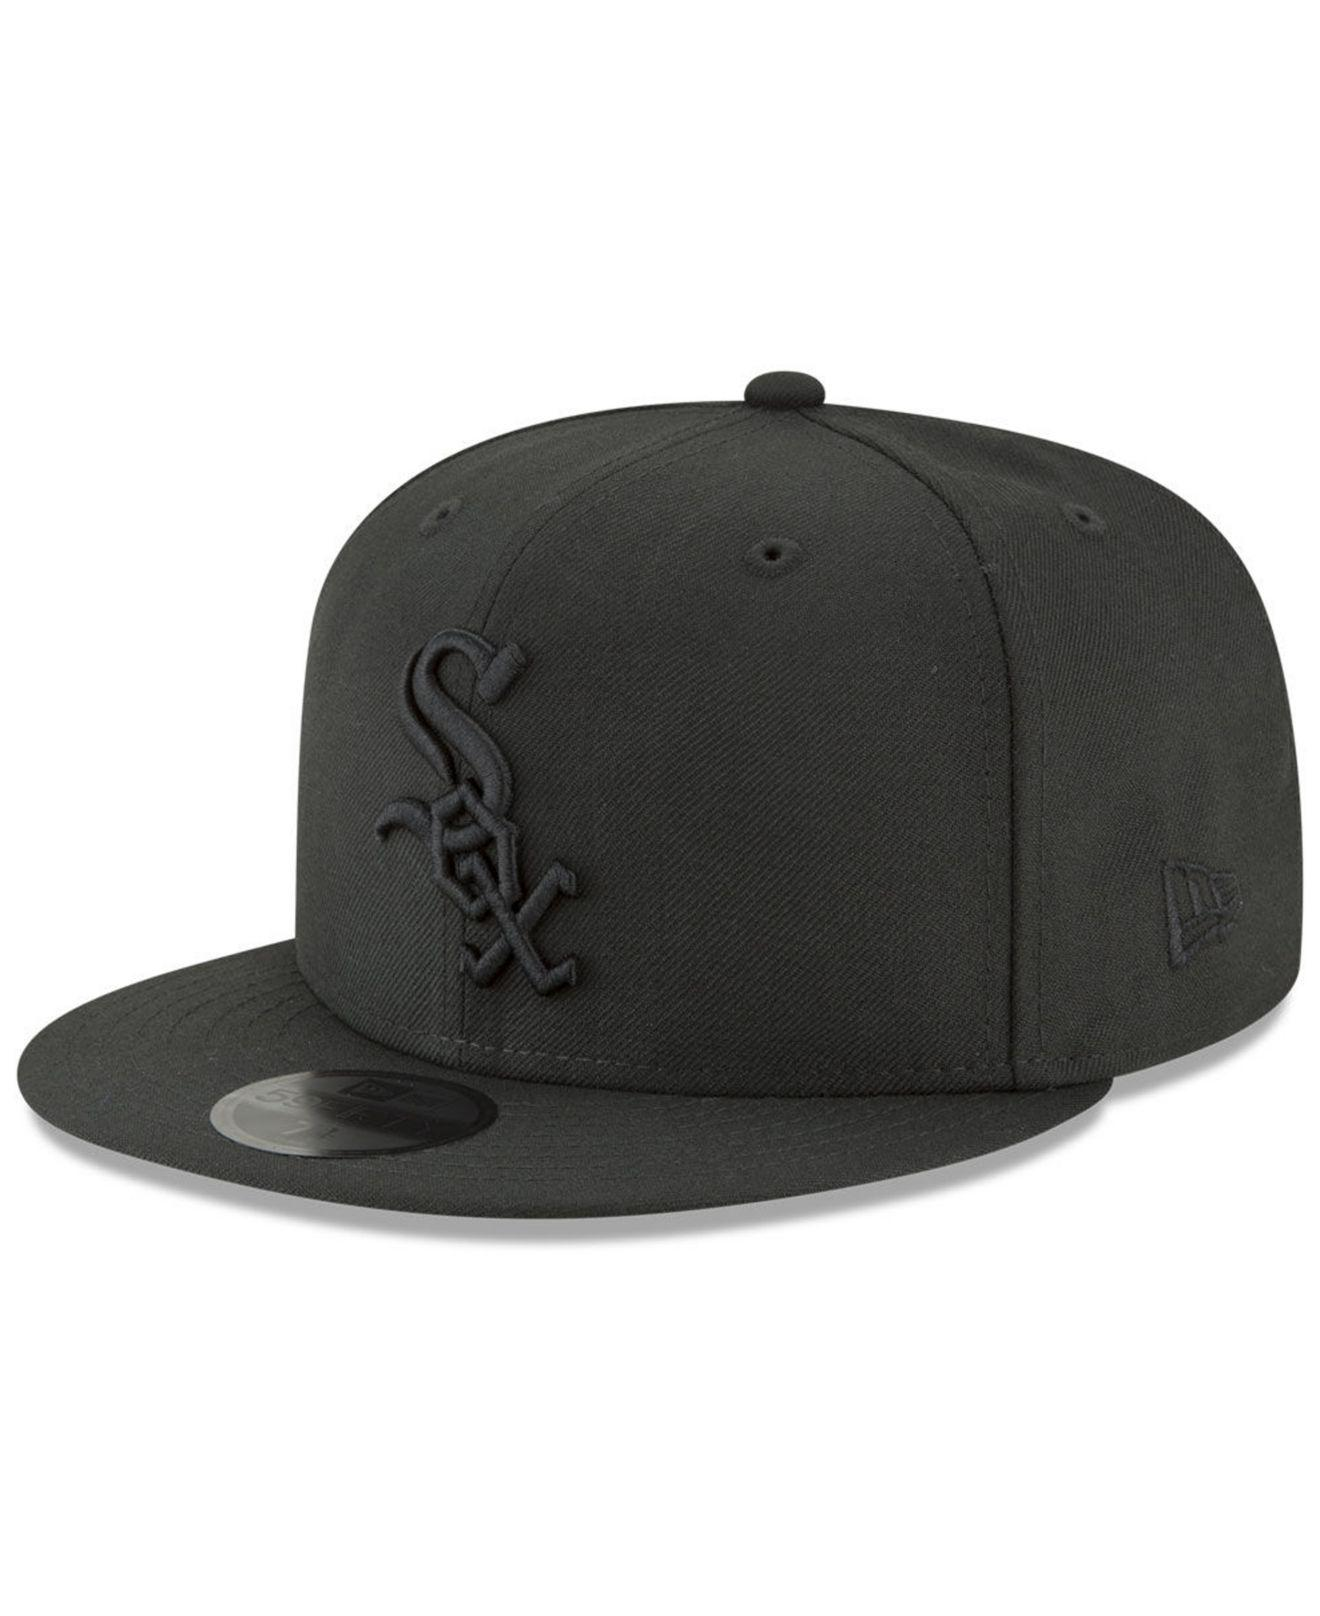 cheap for discount 9c2db 48589 ... snapback black d1a8d 522ff  shopping ktz chicago white sox blackout  59fifty fitted cap for men lyst. view fullscreen 3a283